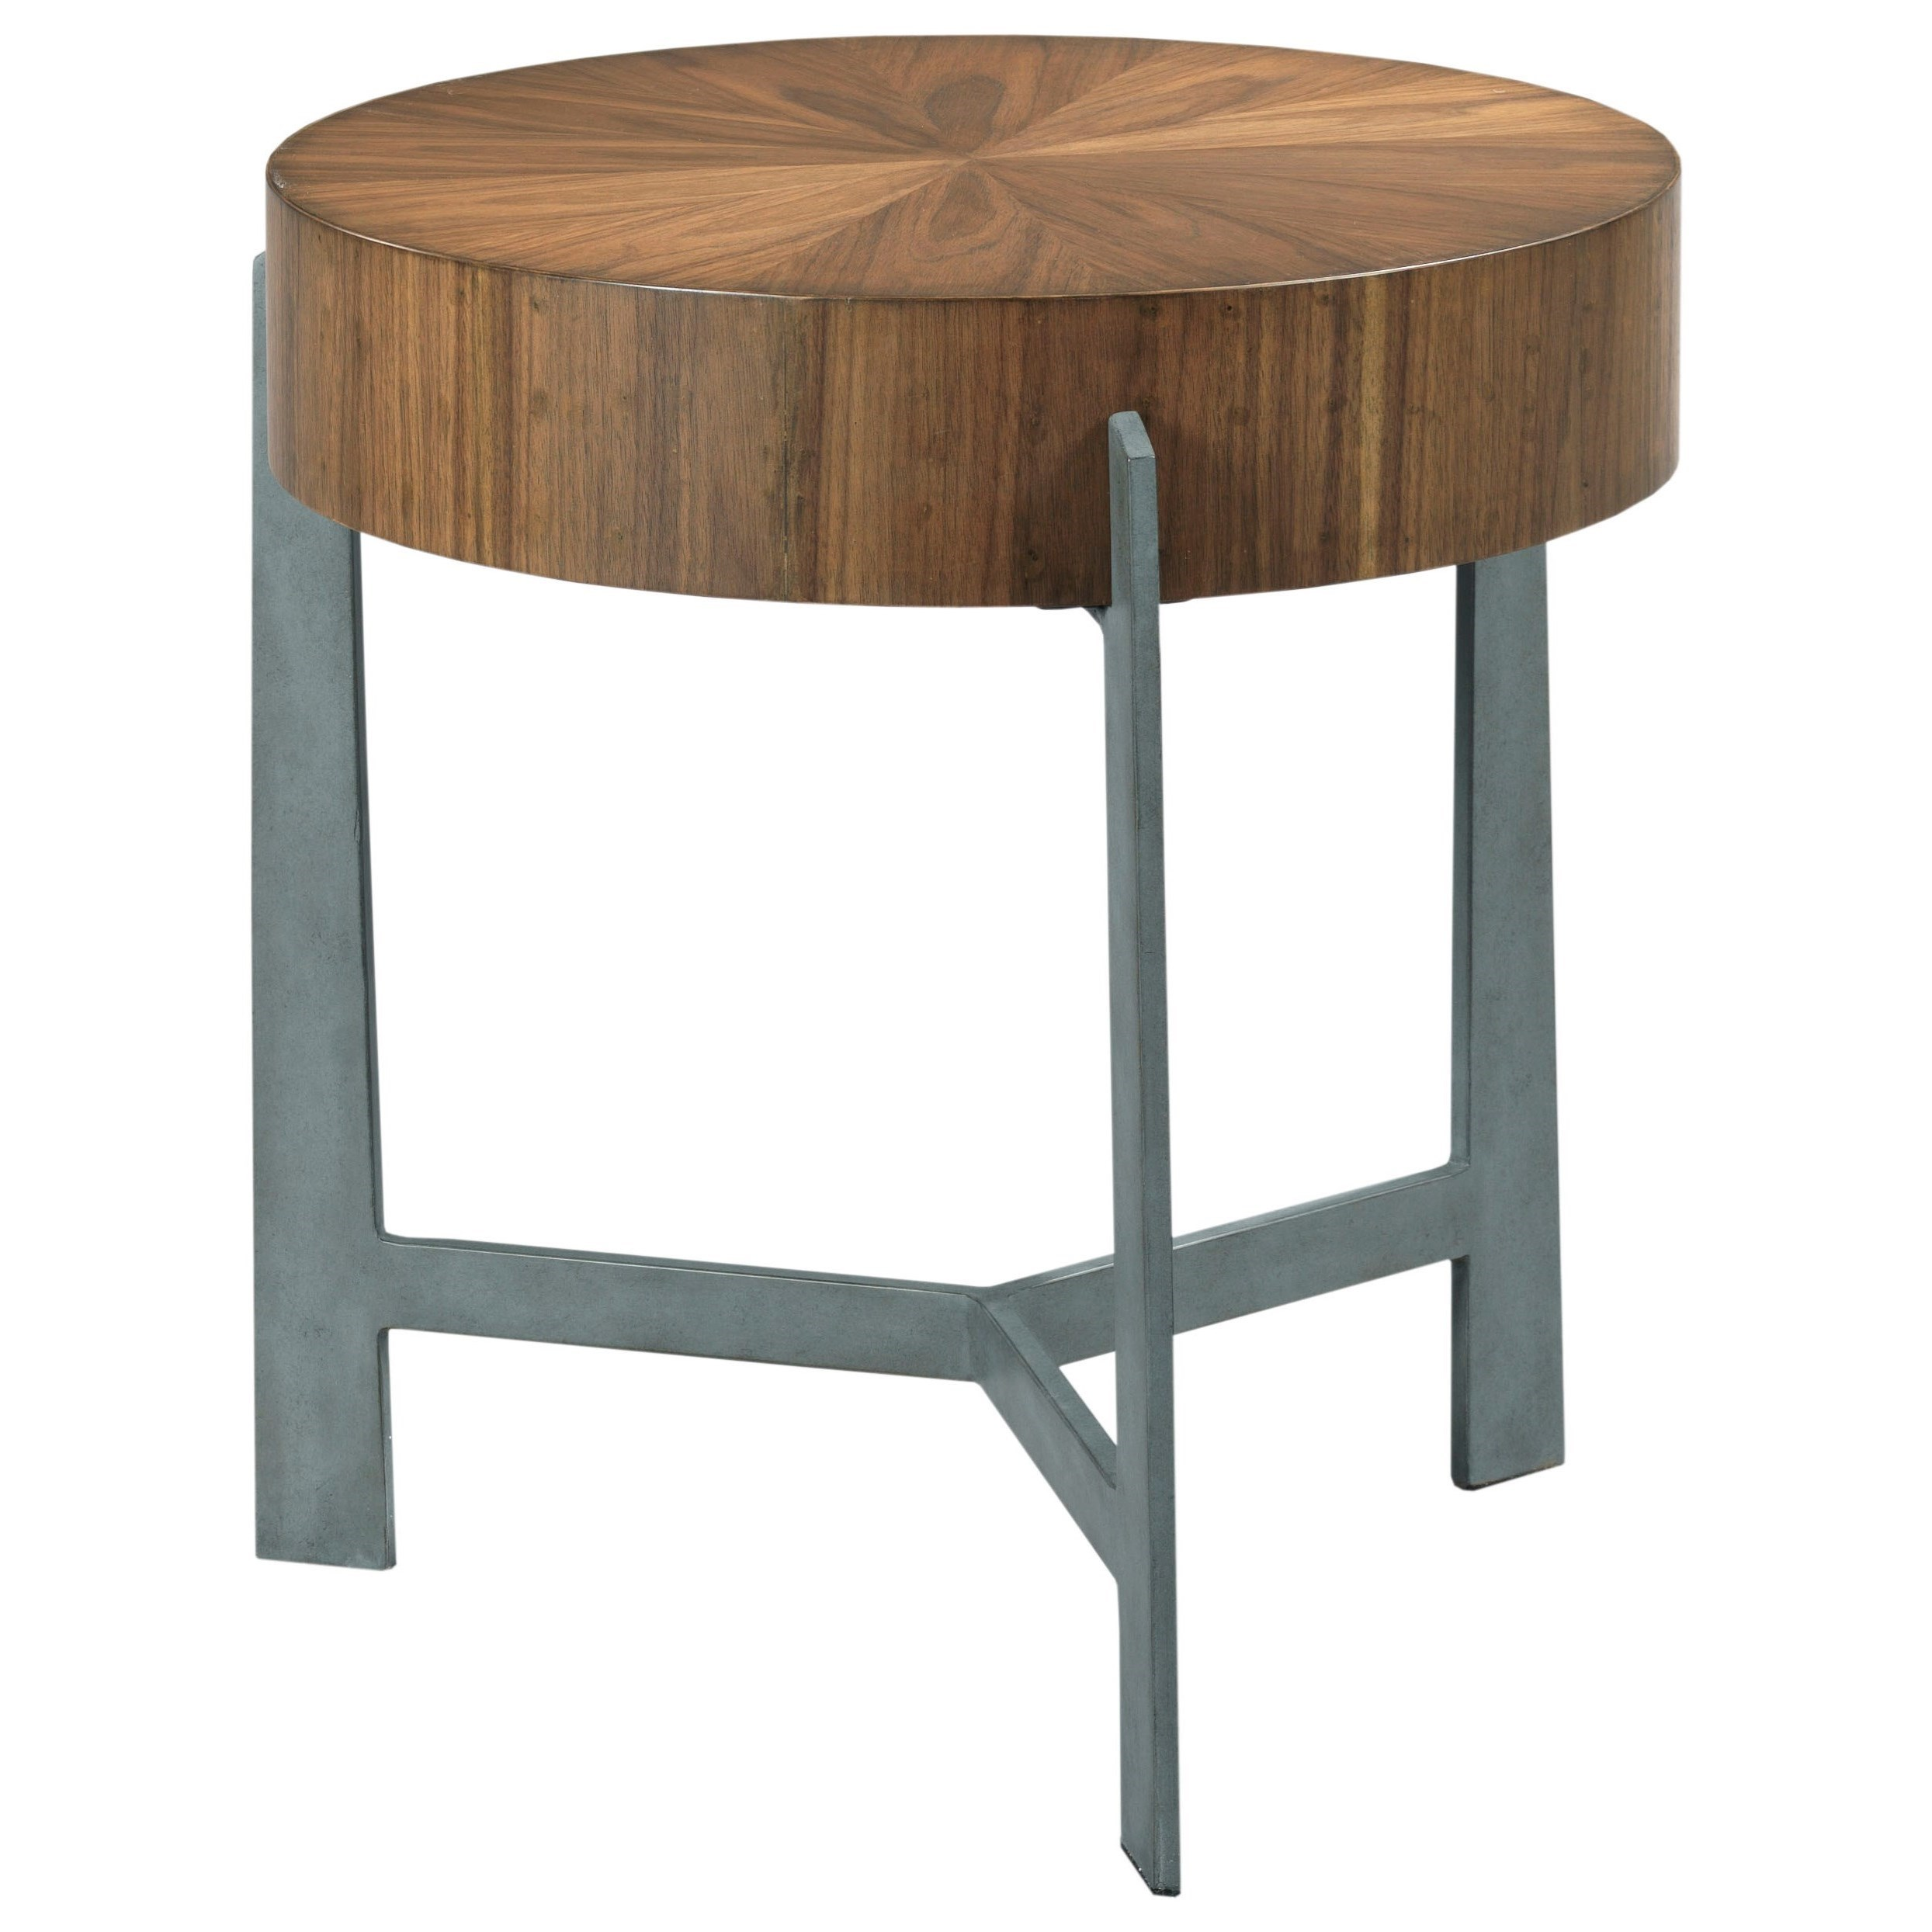 Modern Synergy Framing Lamp Table by American Drew at Northeast Factory Direct